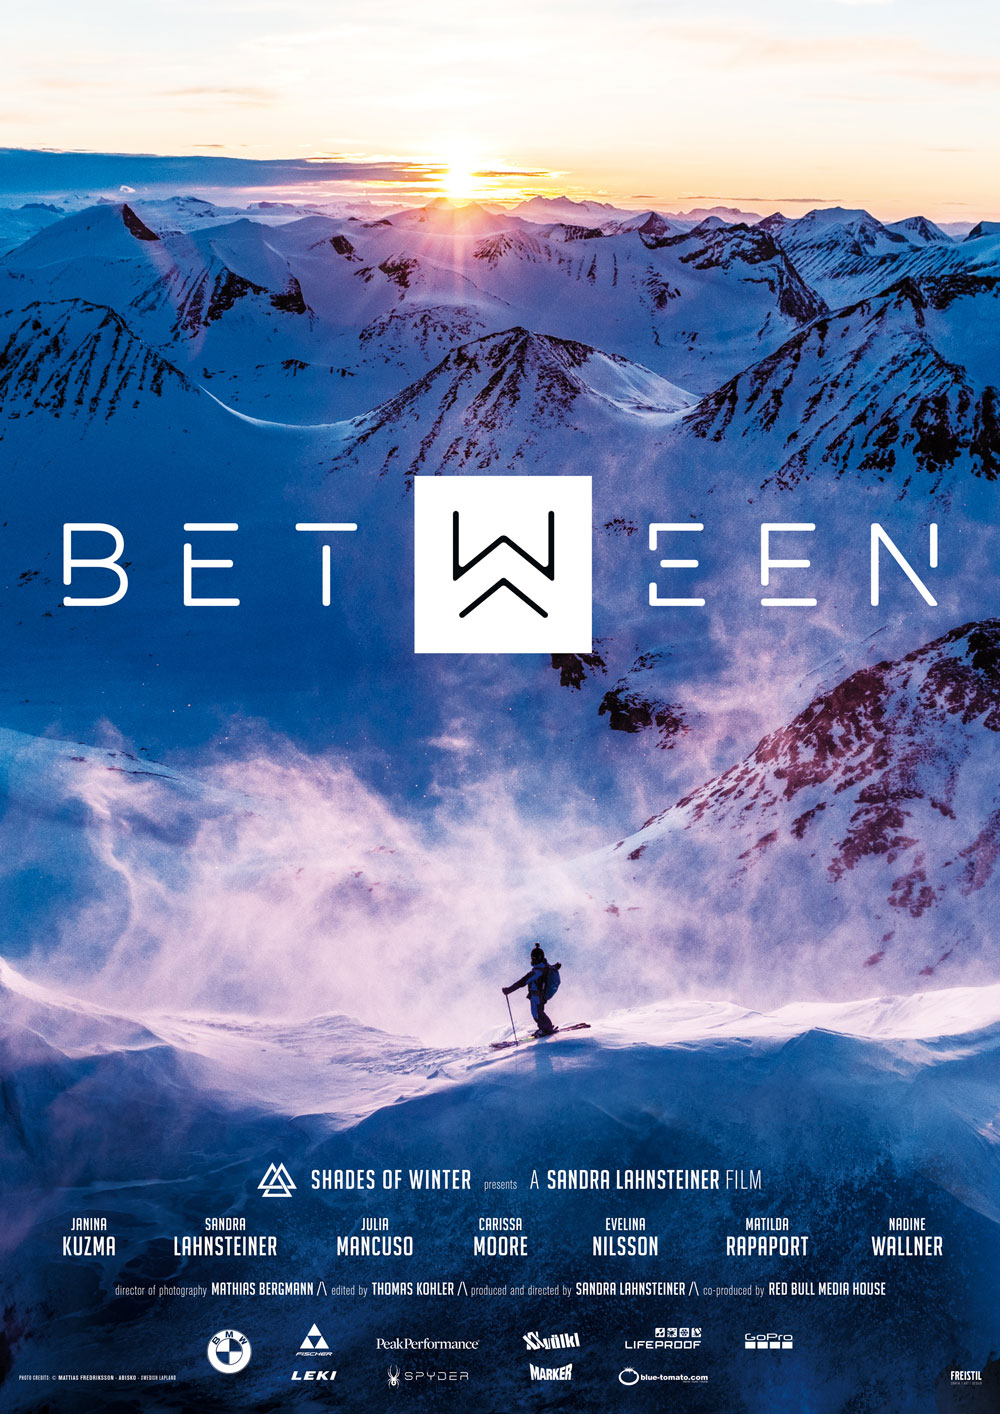 sow16_between_poster_web_credits_portrait_by-mattias-fredriksson